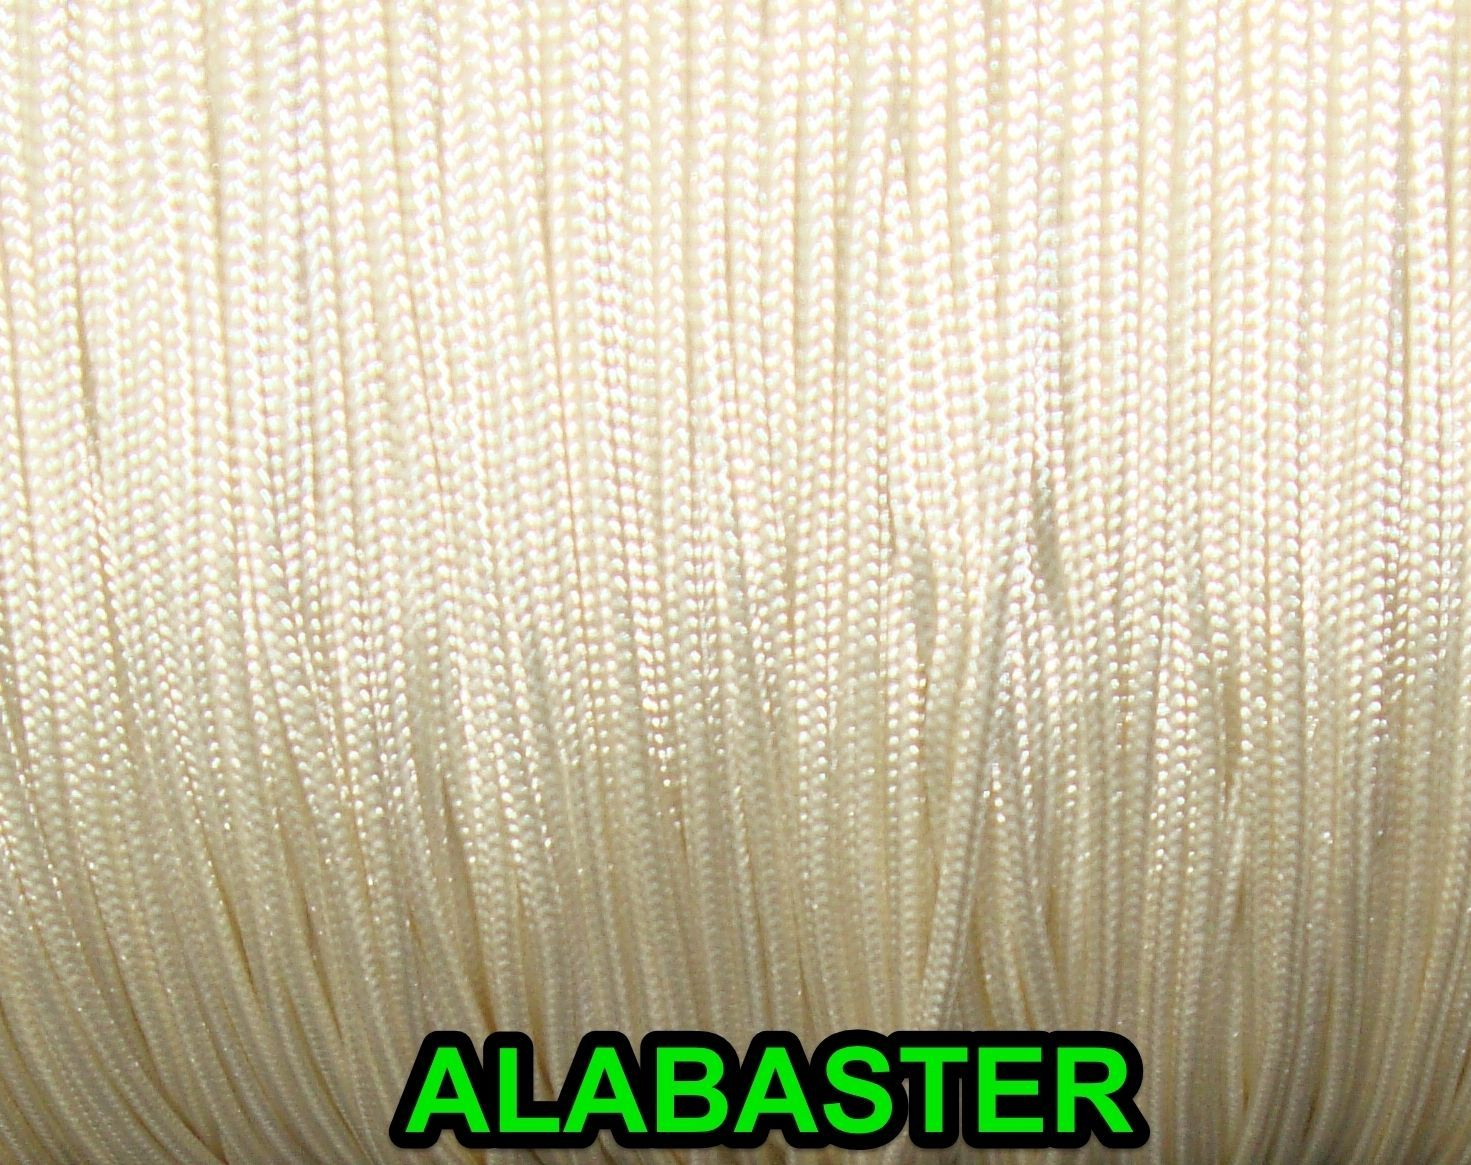 25 FEET:1.8mm ALABASTER LIFT CORD for Blinds, Roman Shades and More